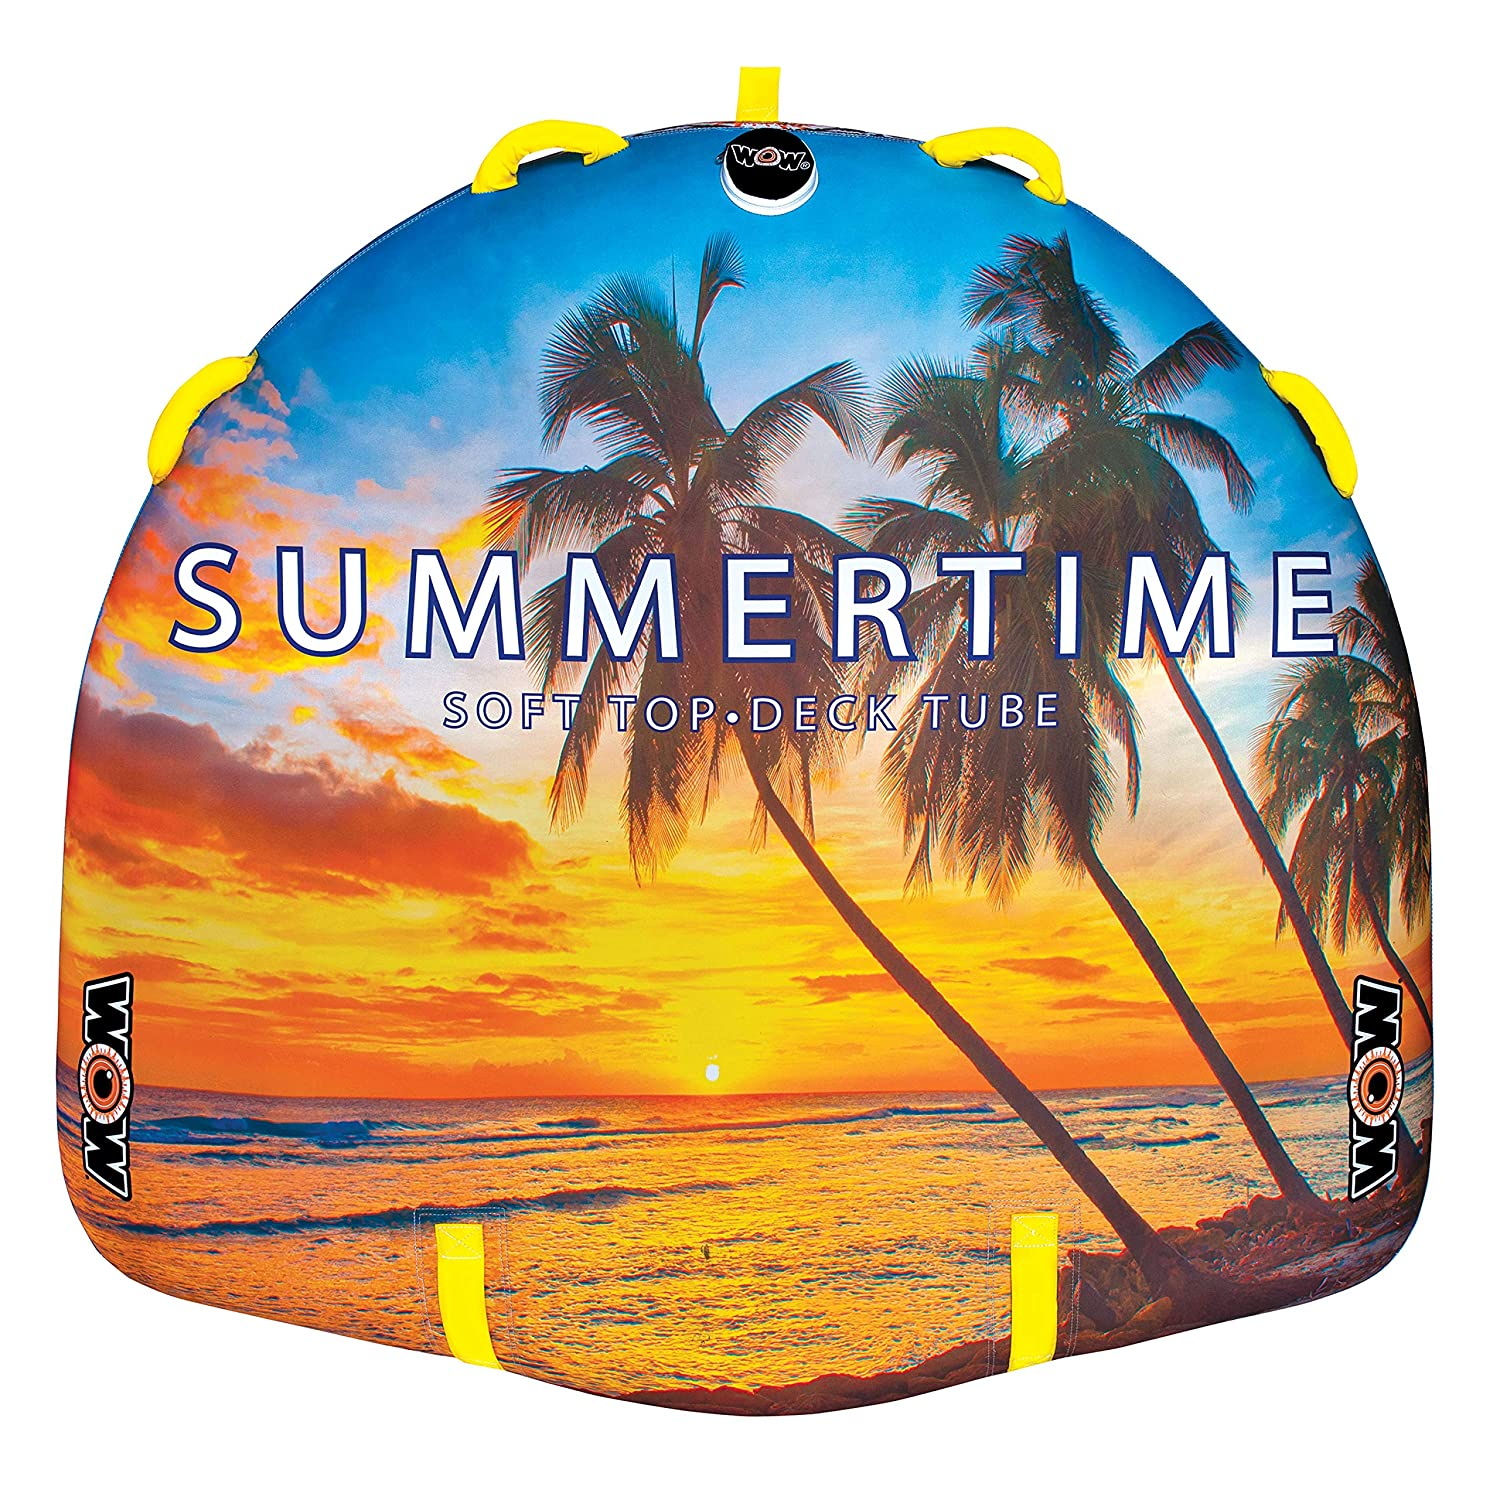 WoW Watersports Summertime, Towable, Ultra Soft Top, Tapered Construction for Wild Ride